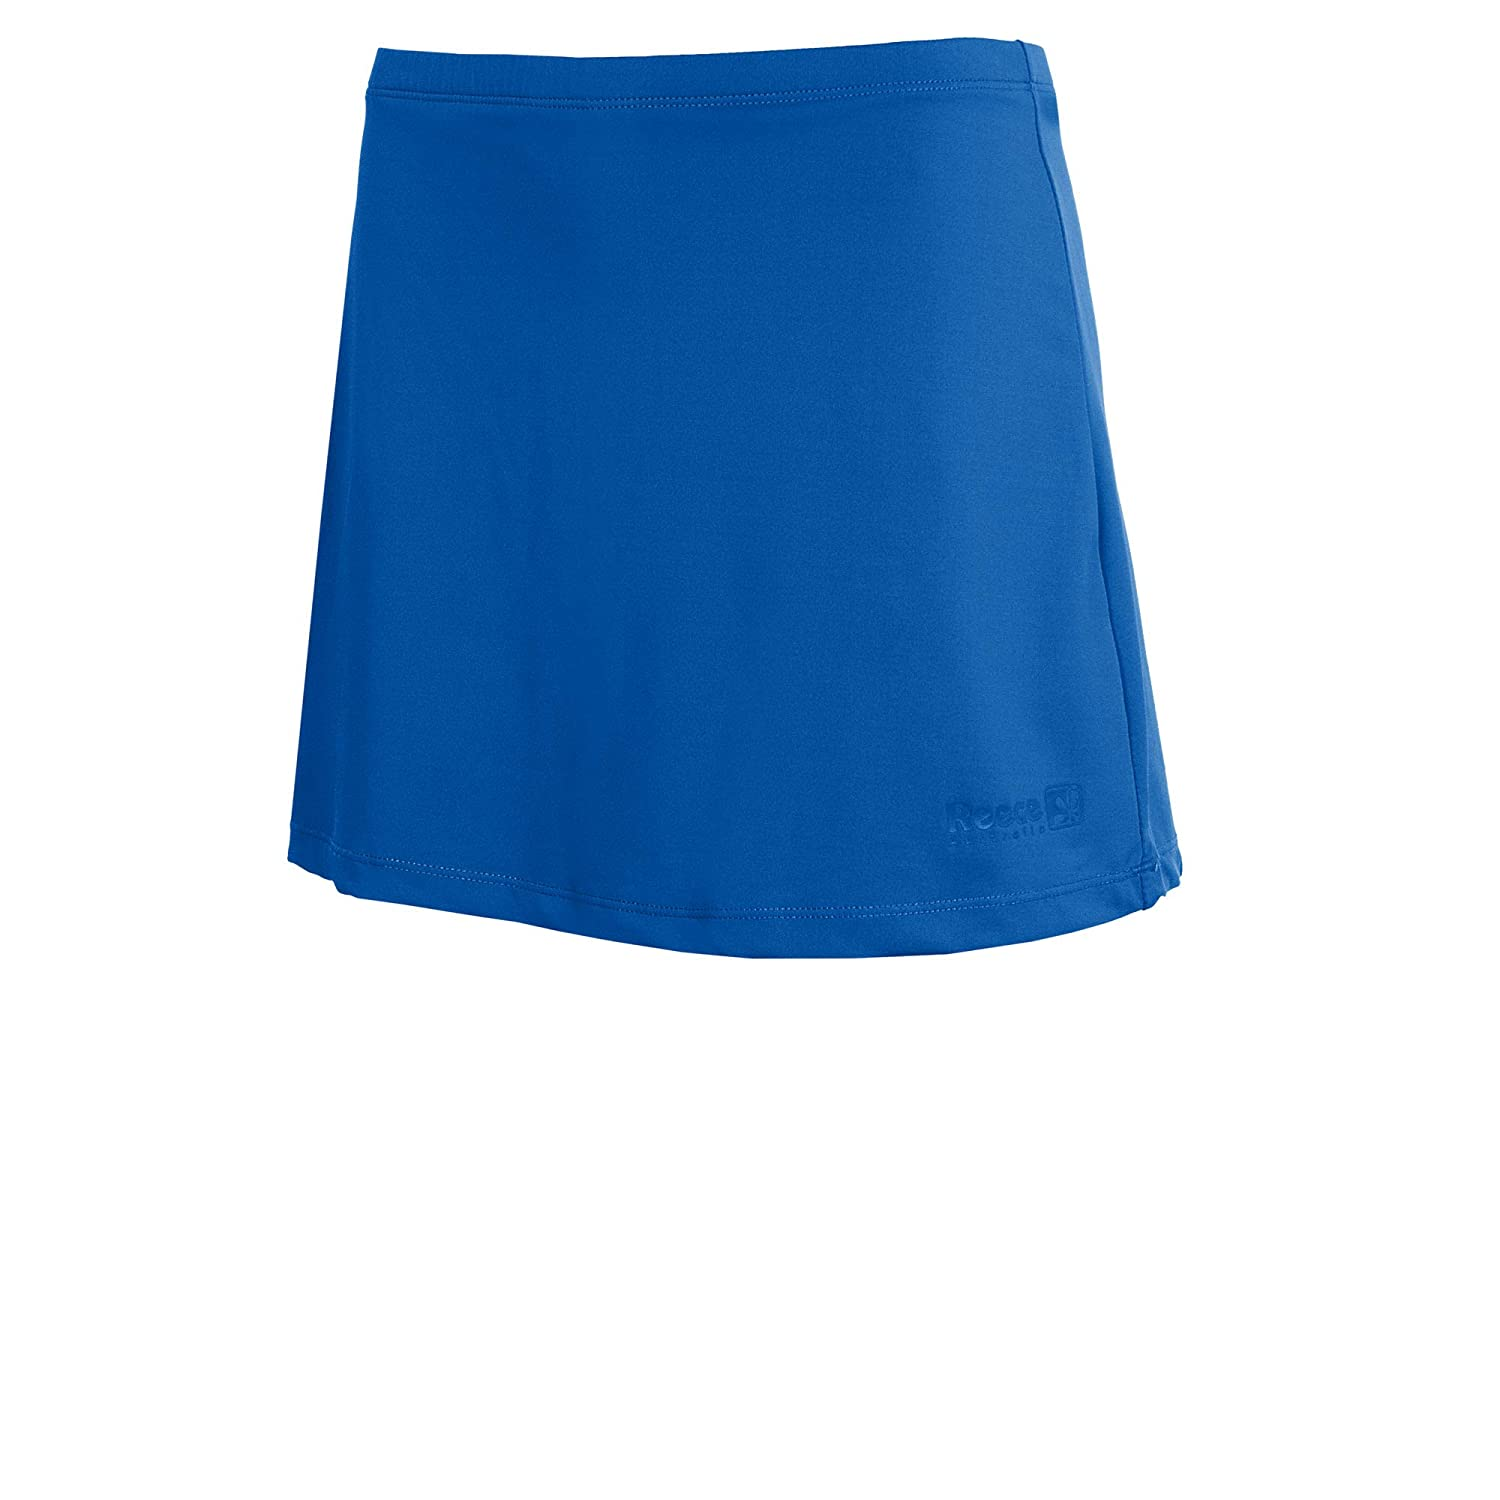 Reece FunDamental Skort Damen, Größe:116, Farbe:Bright Royal